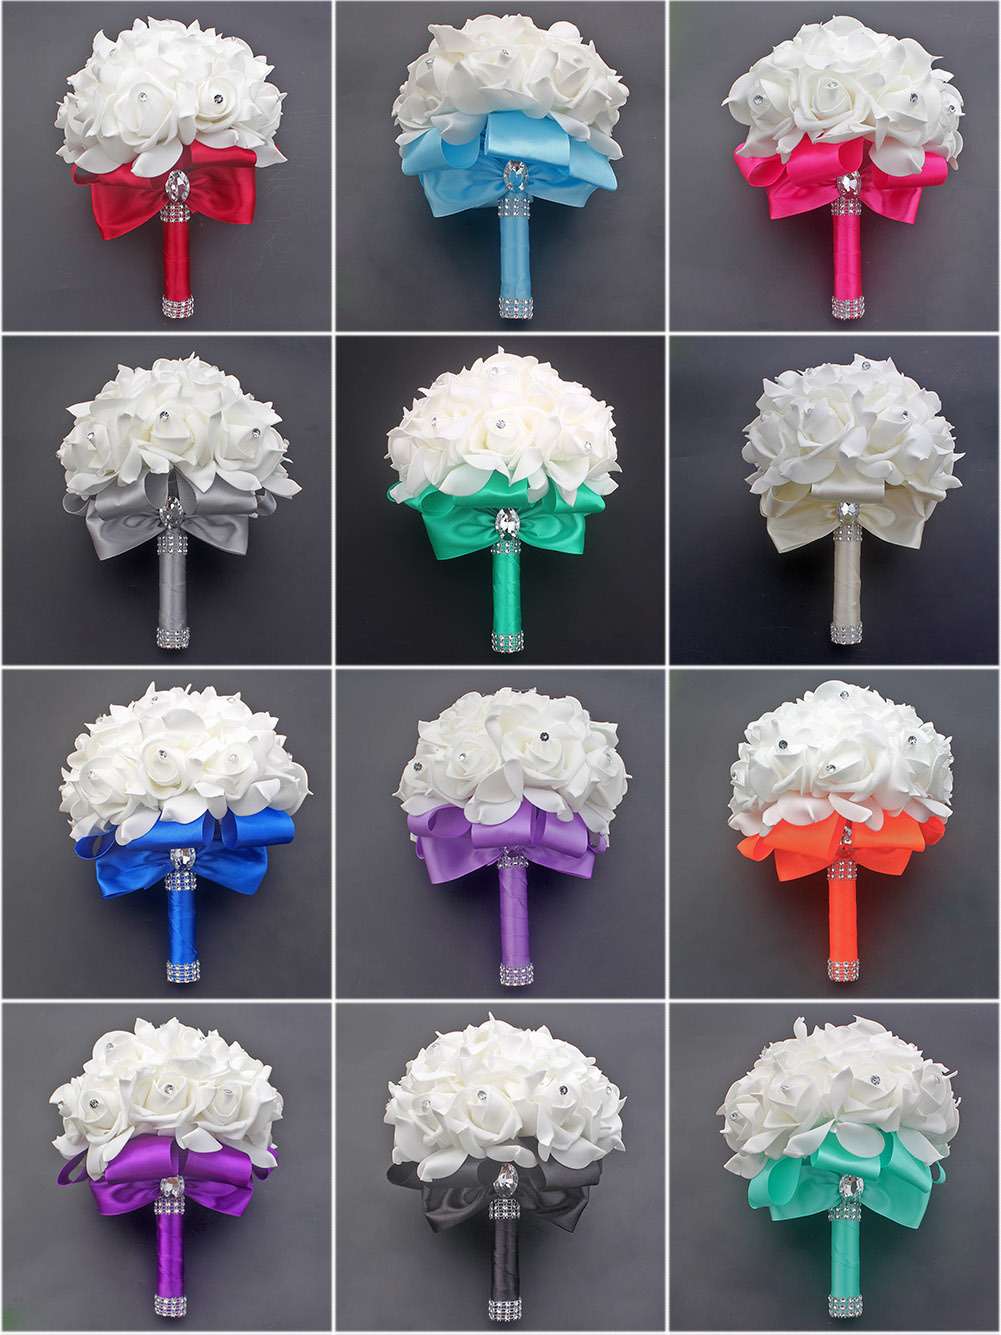 37 Colors Wedding Bouquet For Brides 7.78inch Ribbon Petals Free Shipping  Roses Wedding Bouquet Diamond Bow Wedding Accessories